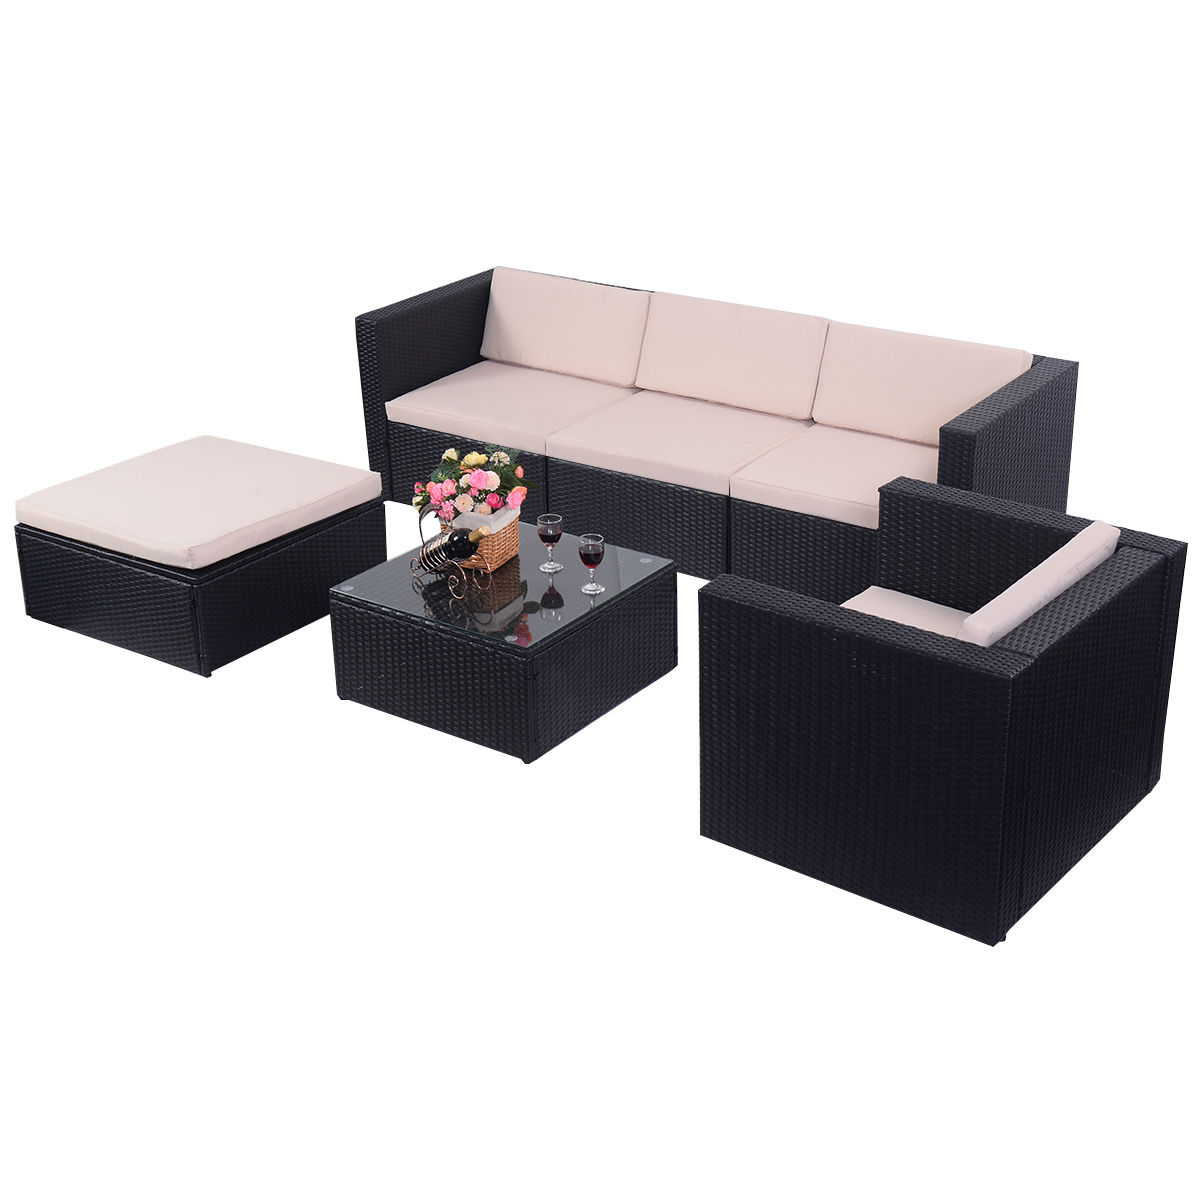 Costway 6 PCS Outdoor Patio Rattan Wicker Sectional Furniture Set Table Sofa Cushioned